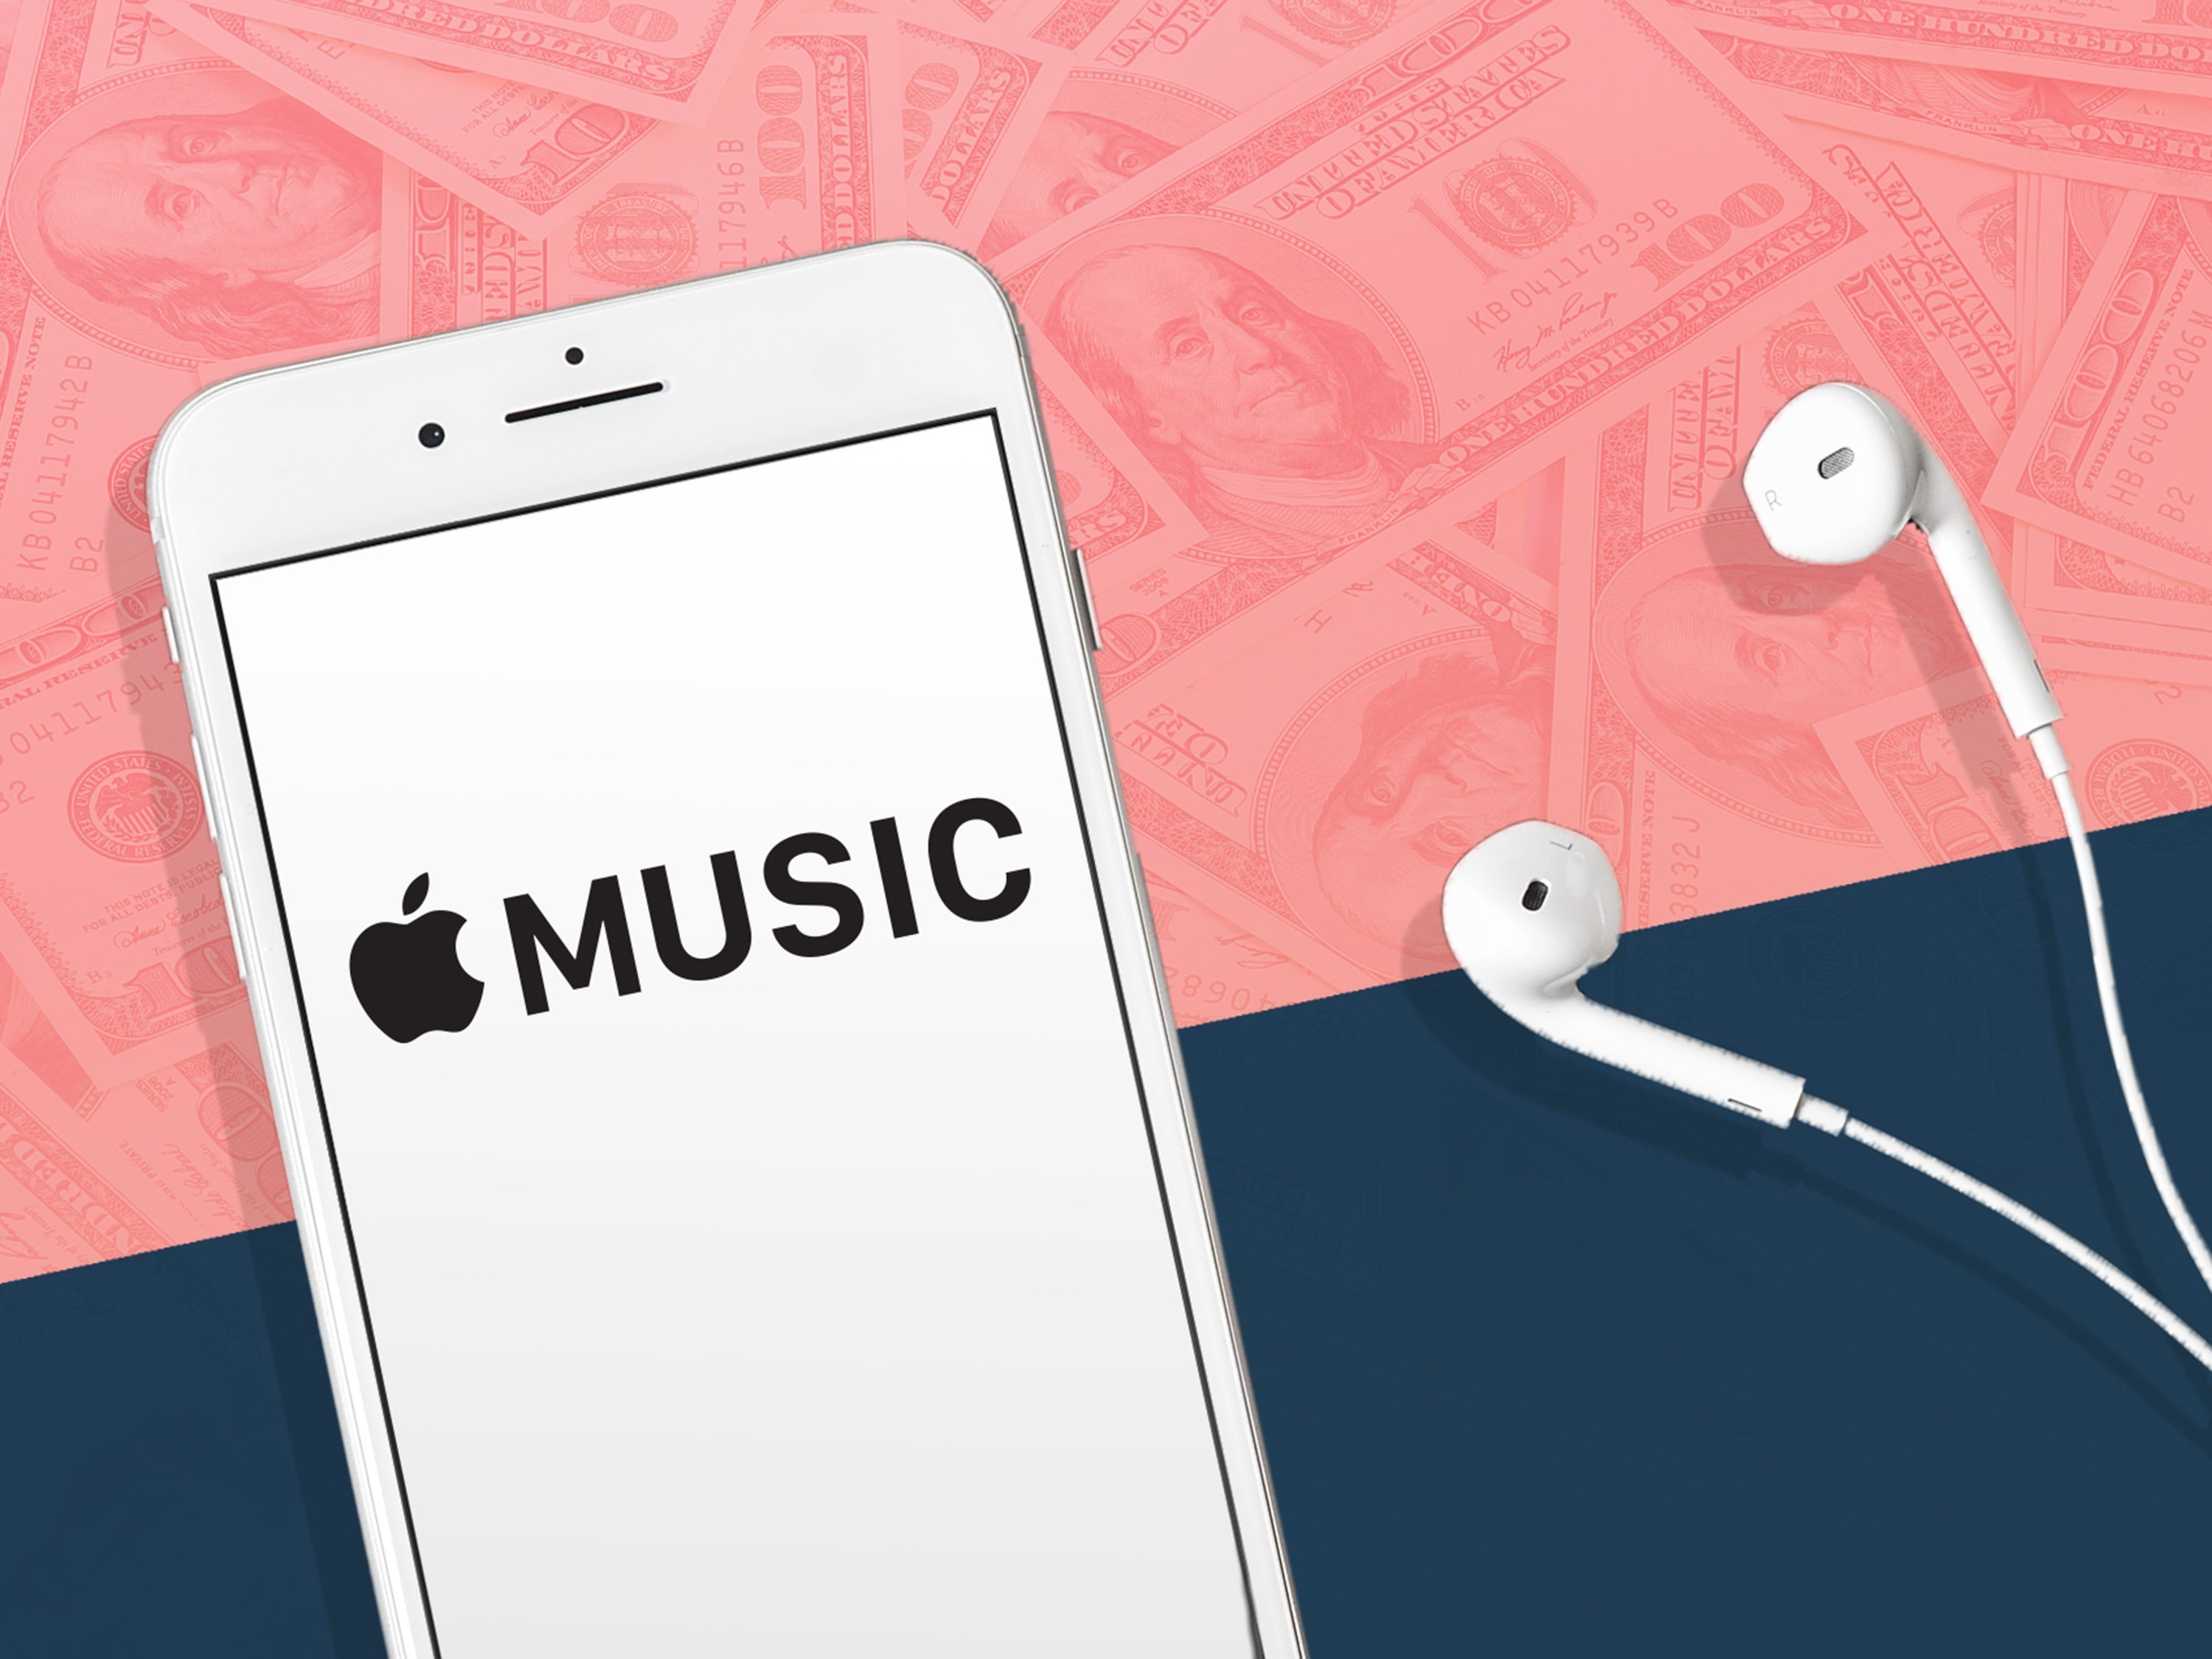 Last week, Apple Music announced it was setting up a global music publishing division, raising eyebrows in the music world, with industry insiders wondering what the move meant.